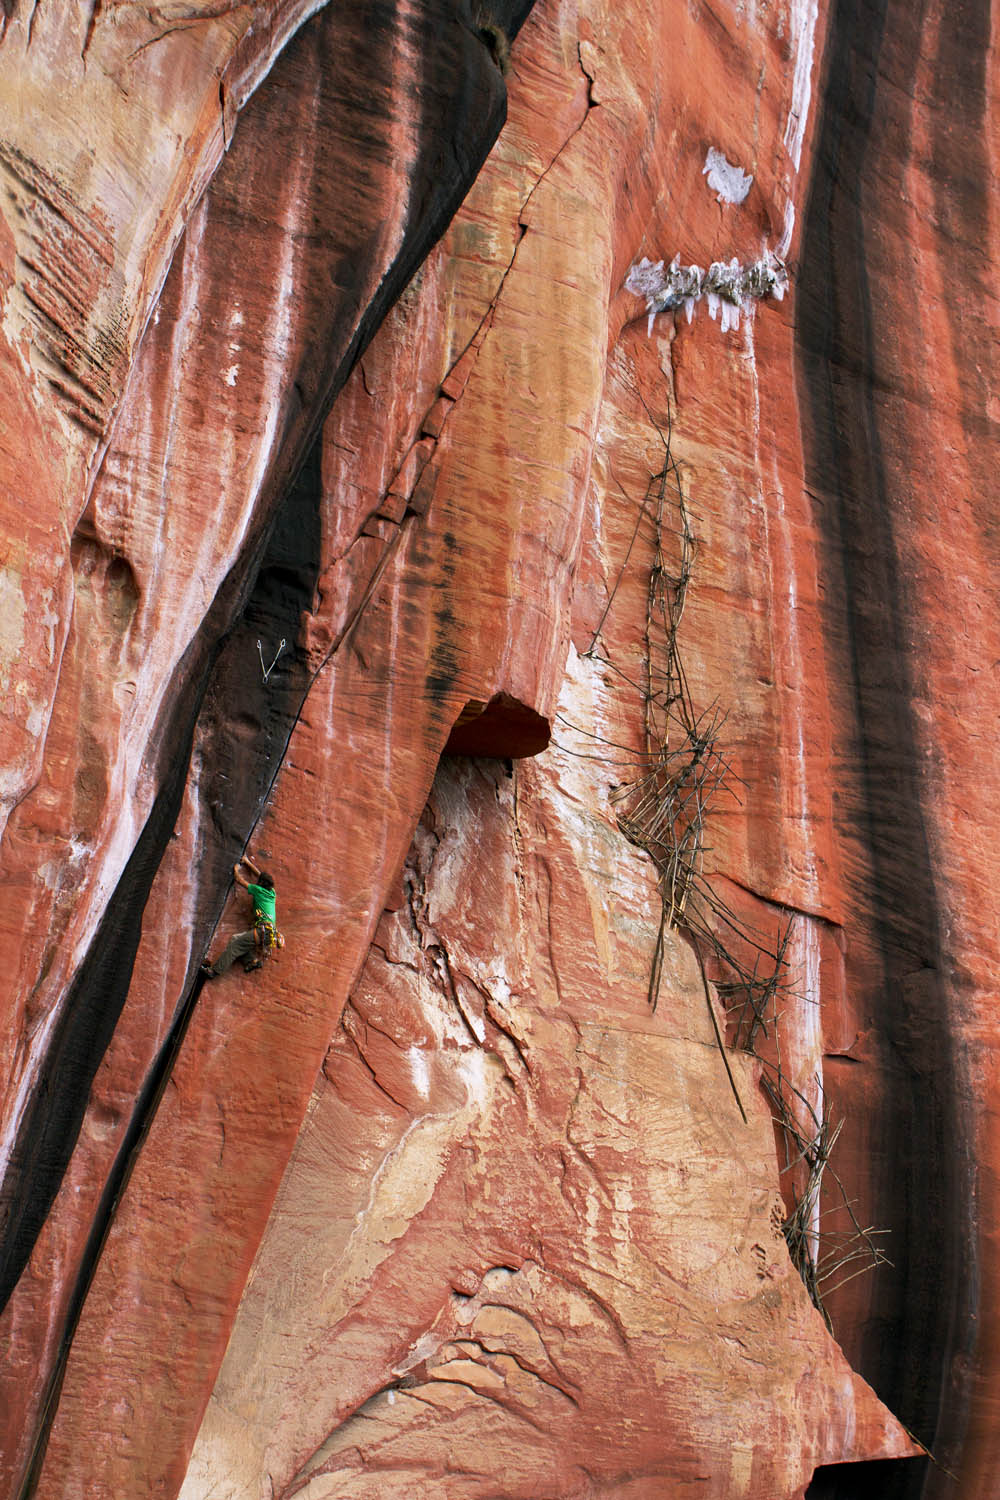 Climber on Ding Dong's Crack